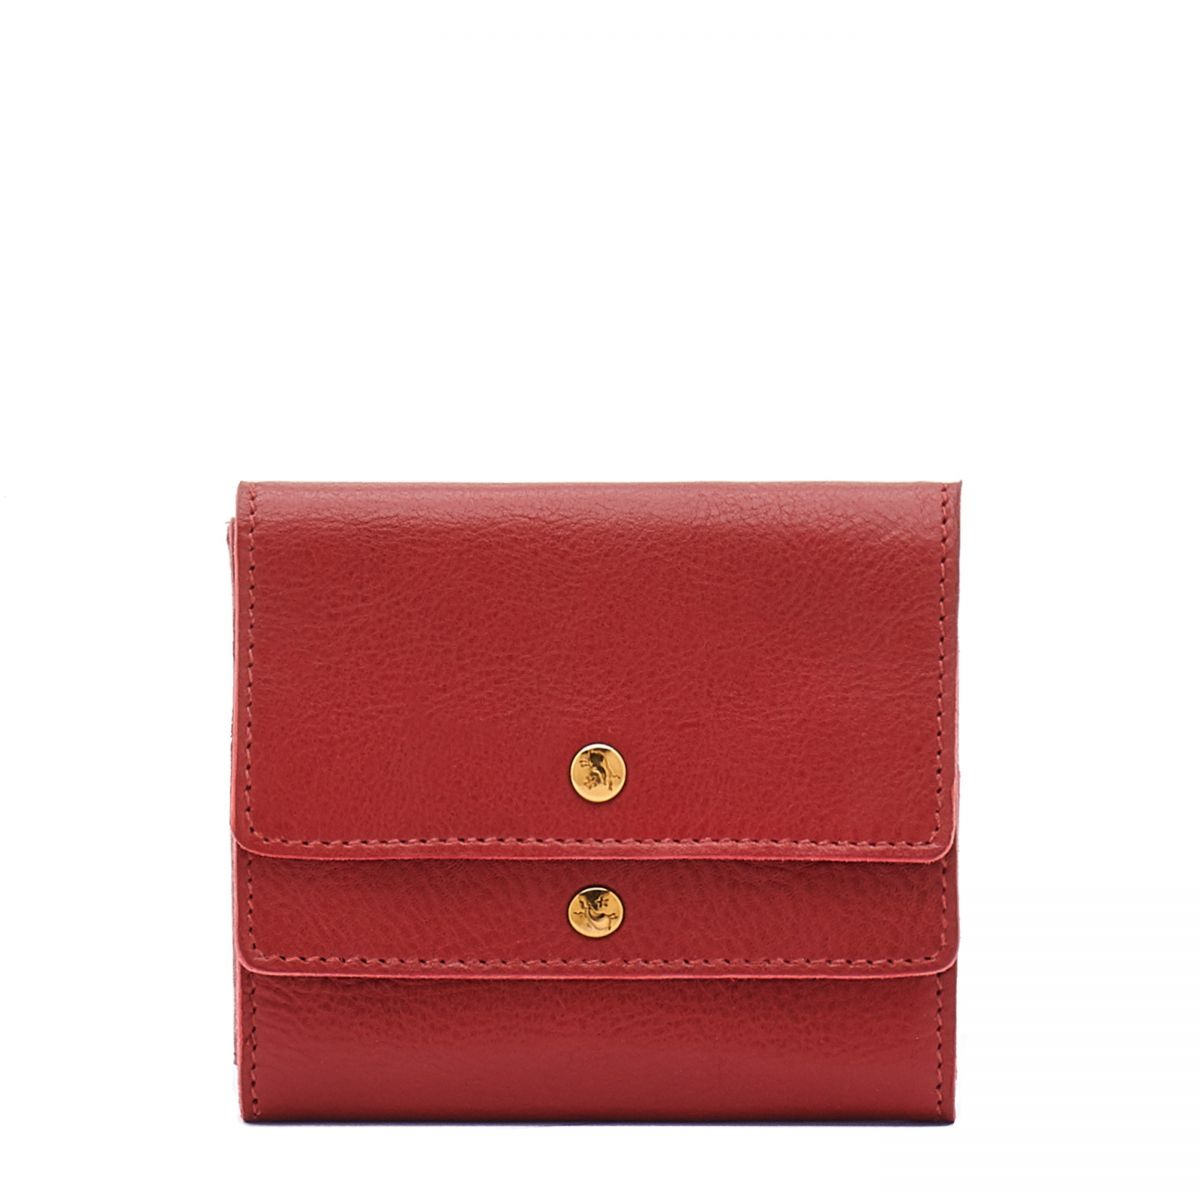 Women's Wallet  in Cowhide Leather SMW107 color Red | Details